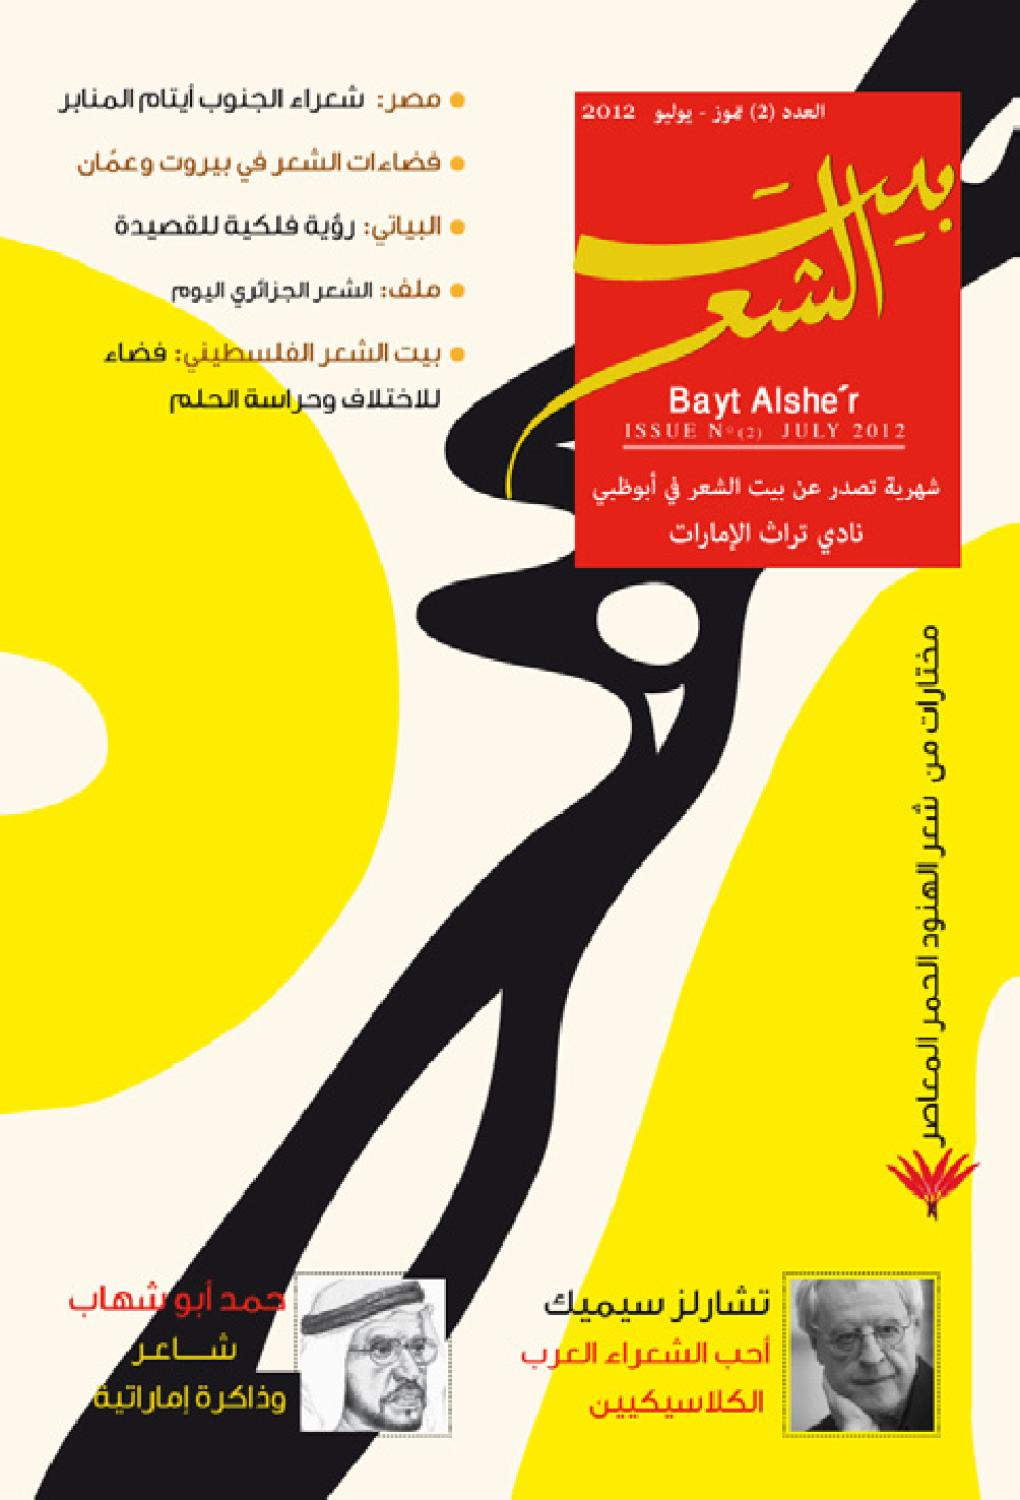 e87d02c03563d bayt alshier 2 by SBZC Mags - issuu